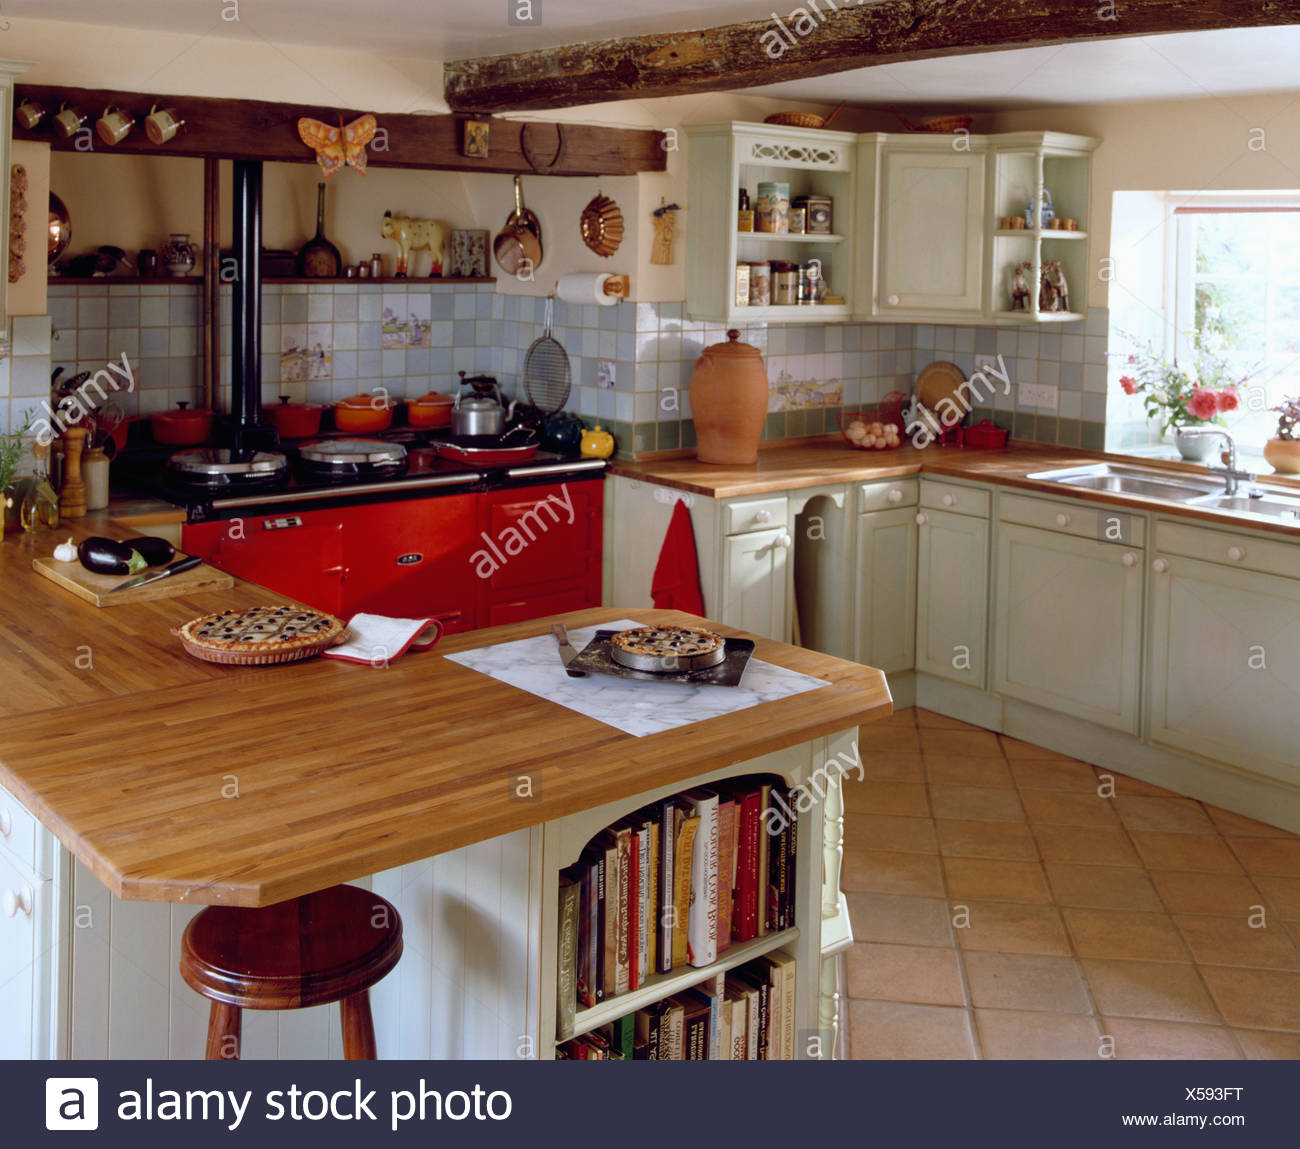 Island unit with wooden worktop in traditional country kitchen with red Aga double oven and terracotta floor tiles & Island unit with wooden worktop in traditional country kitchen with ...